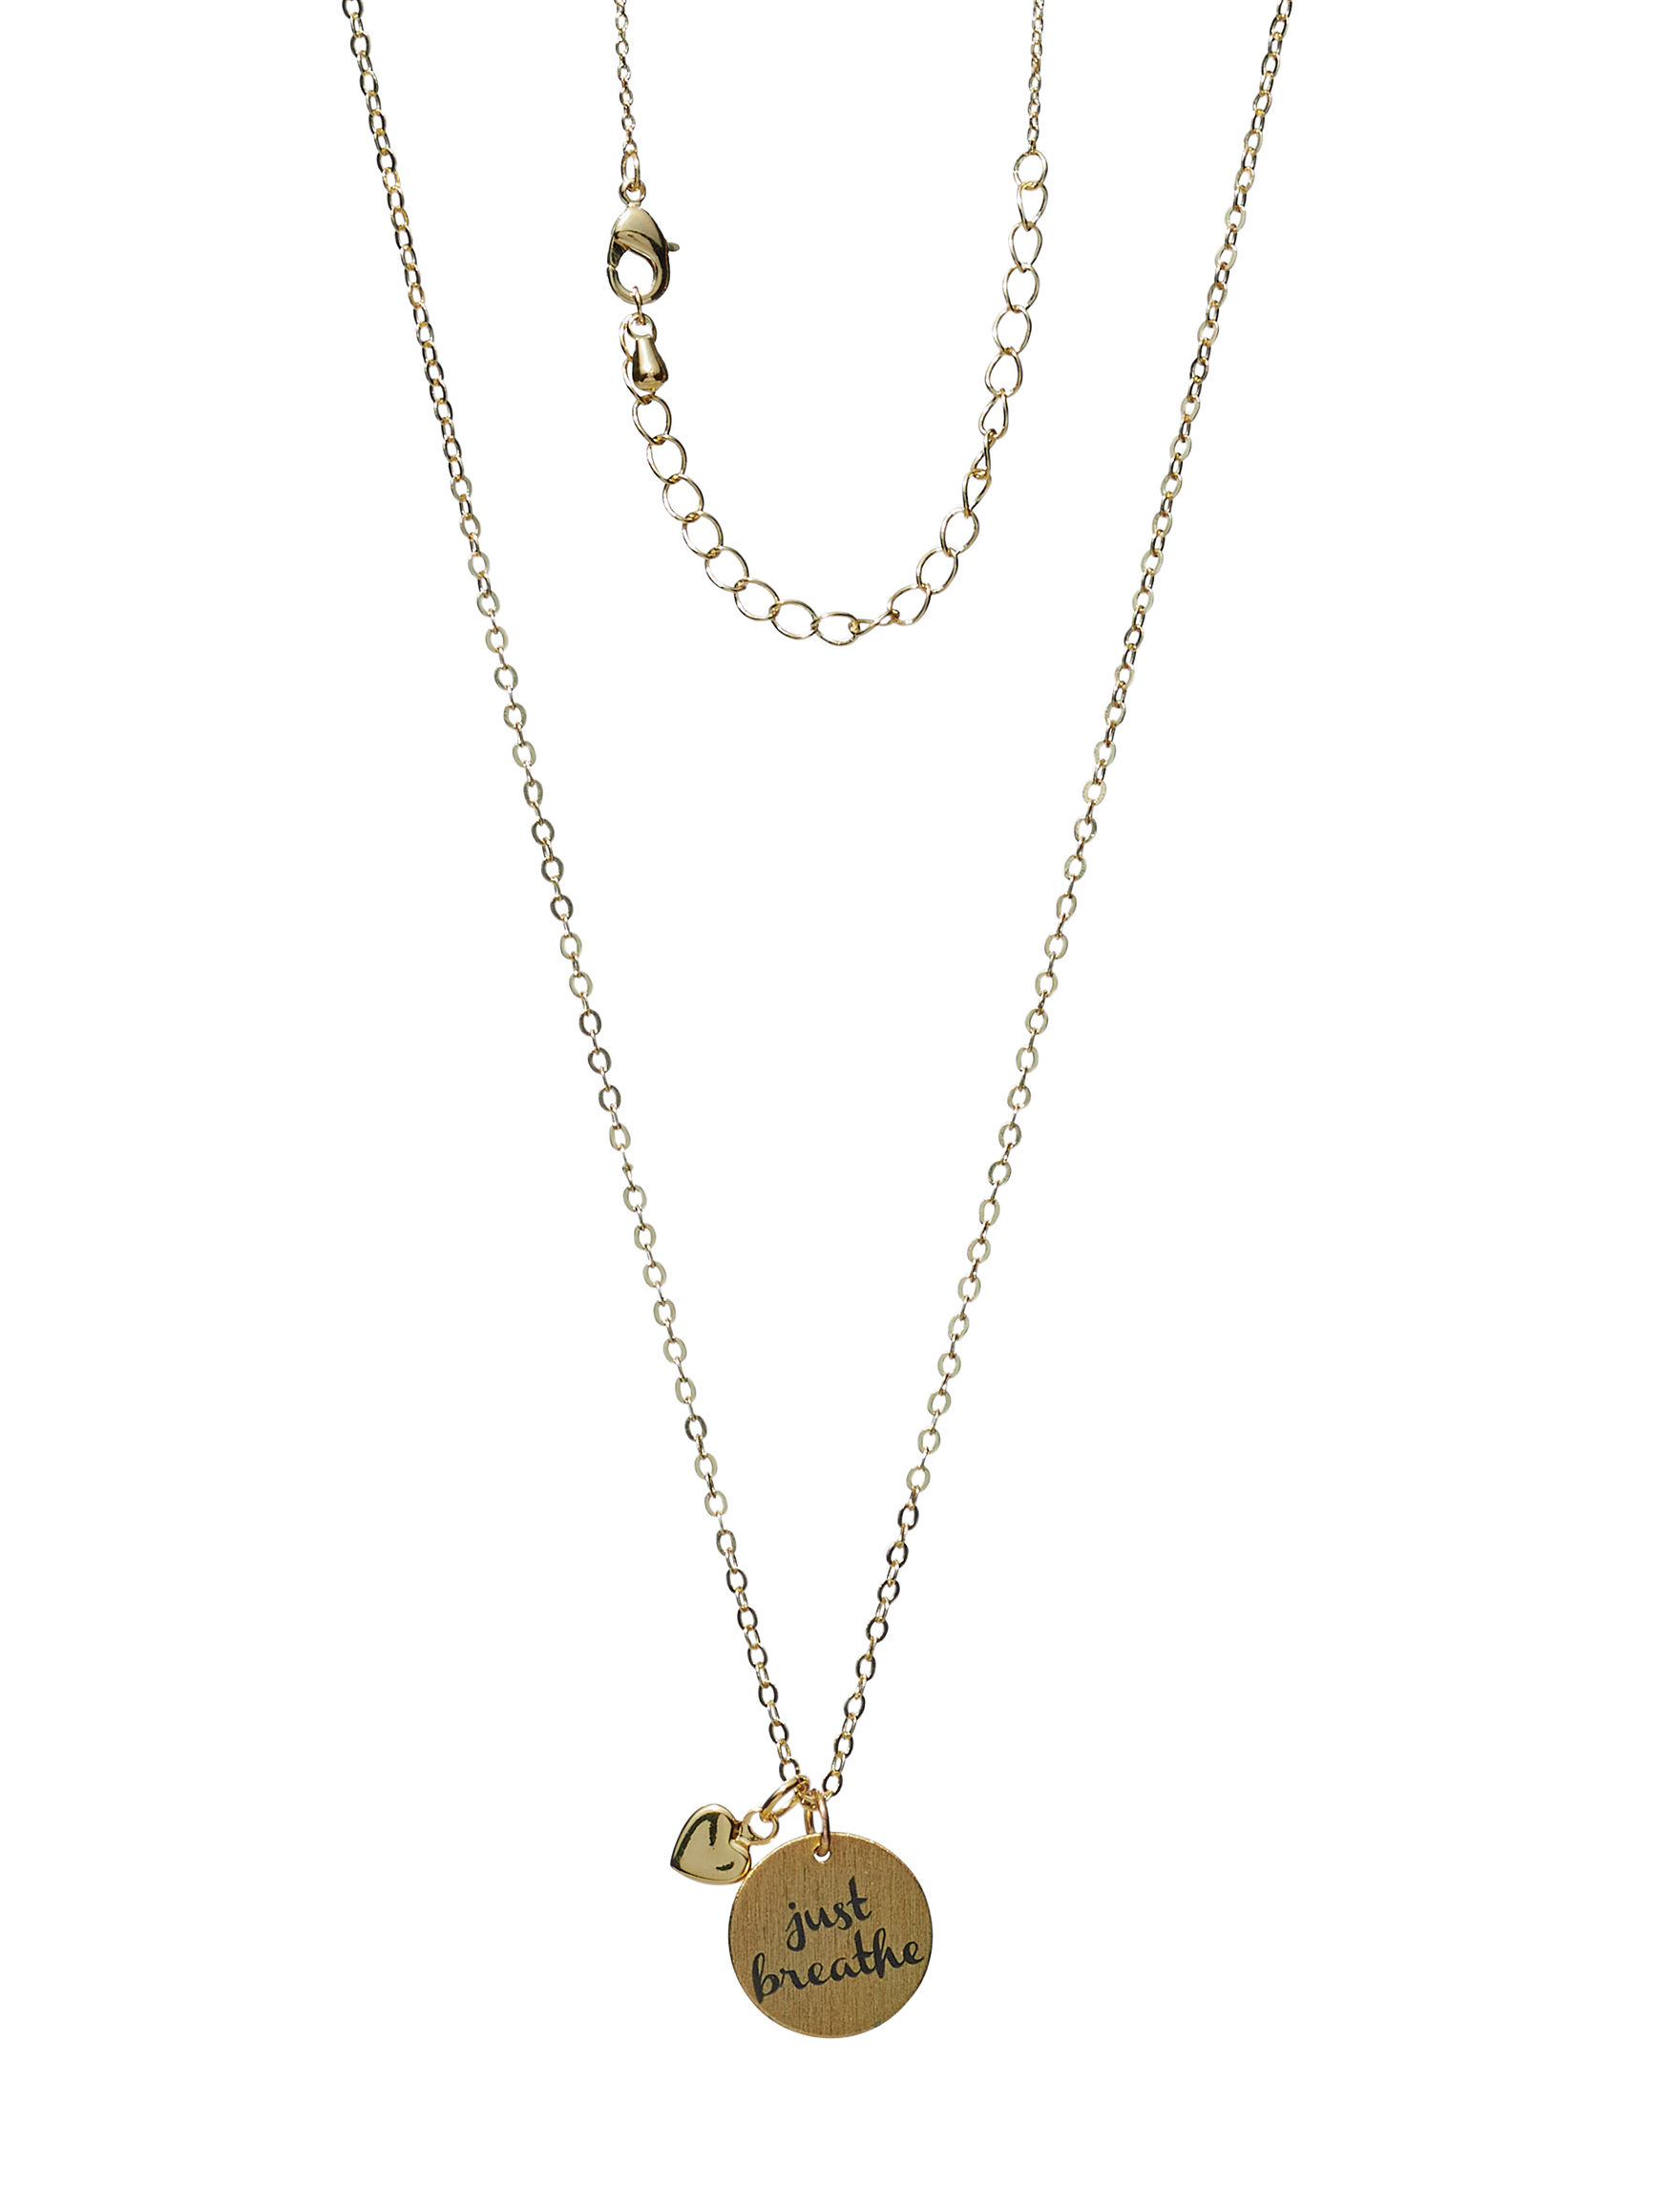 City by City Gold Necklaces & Pendants Fashion Jewelry